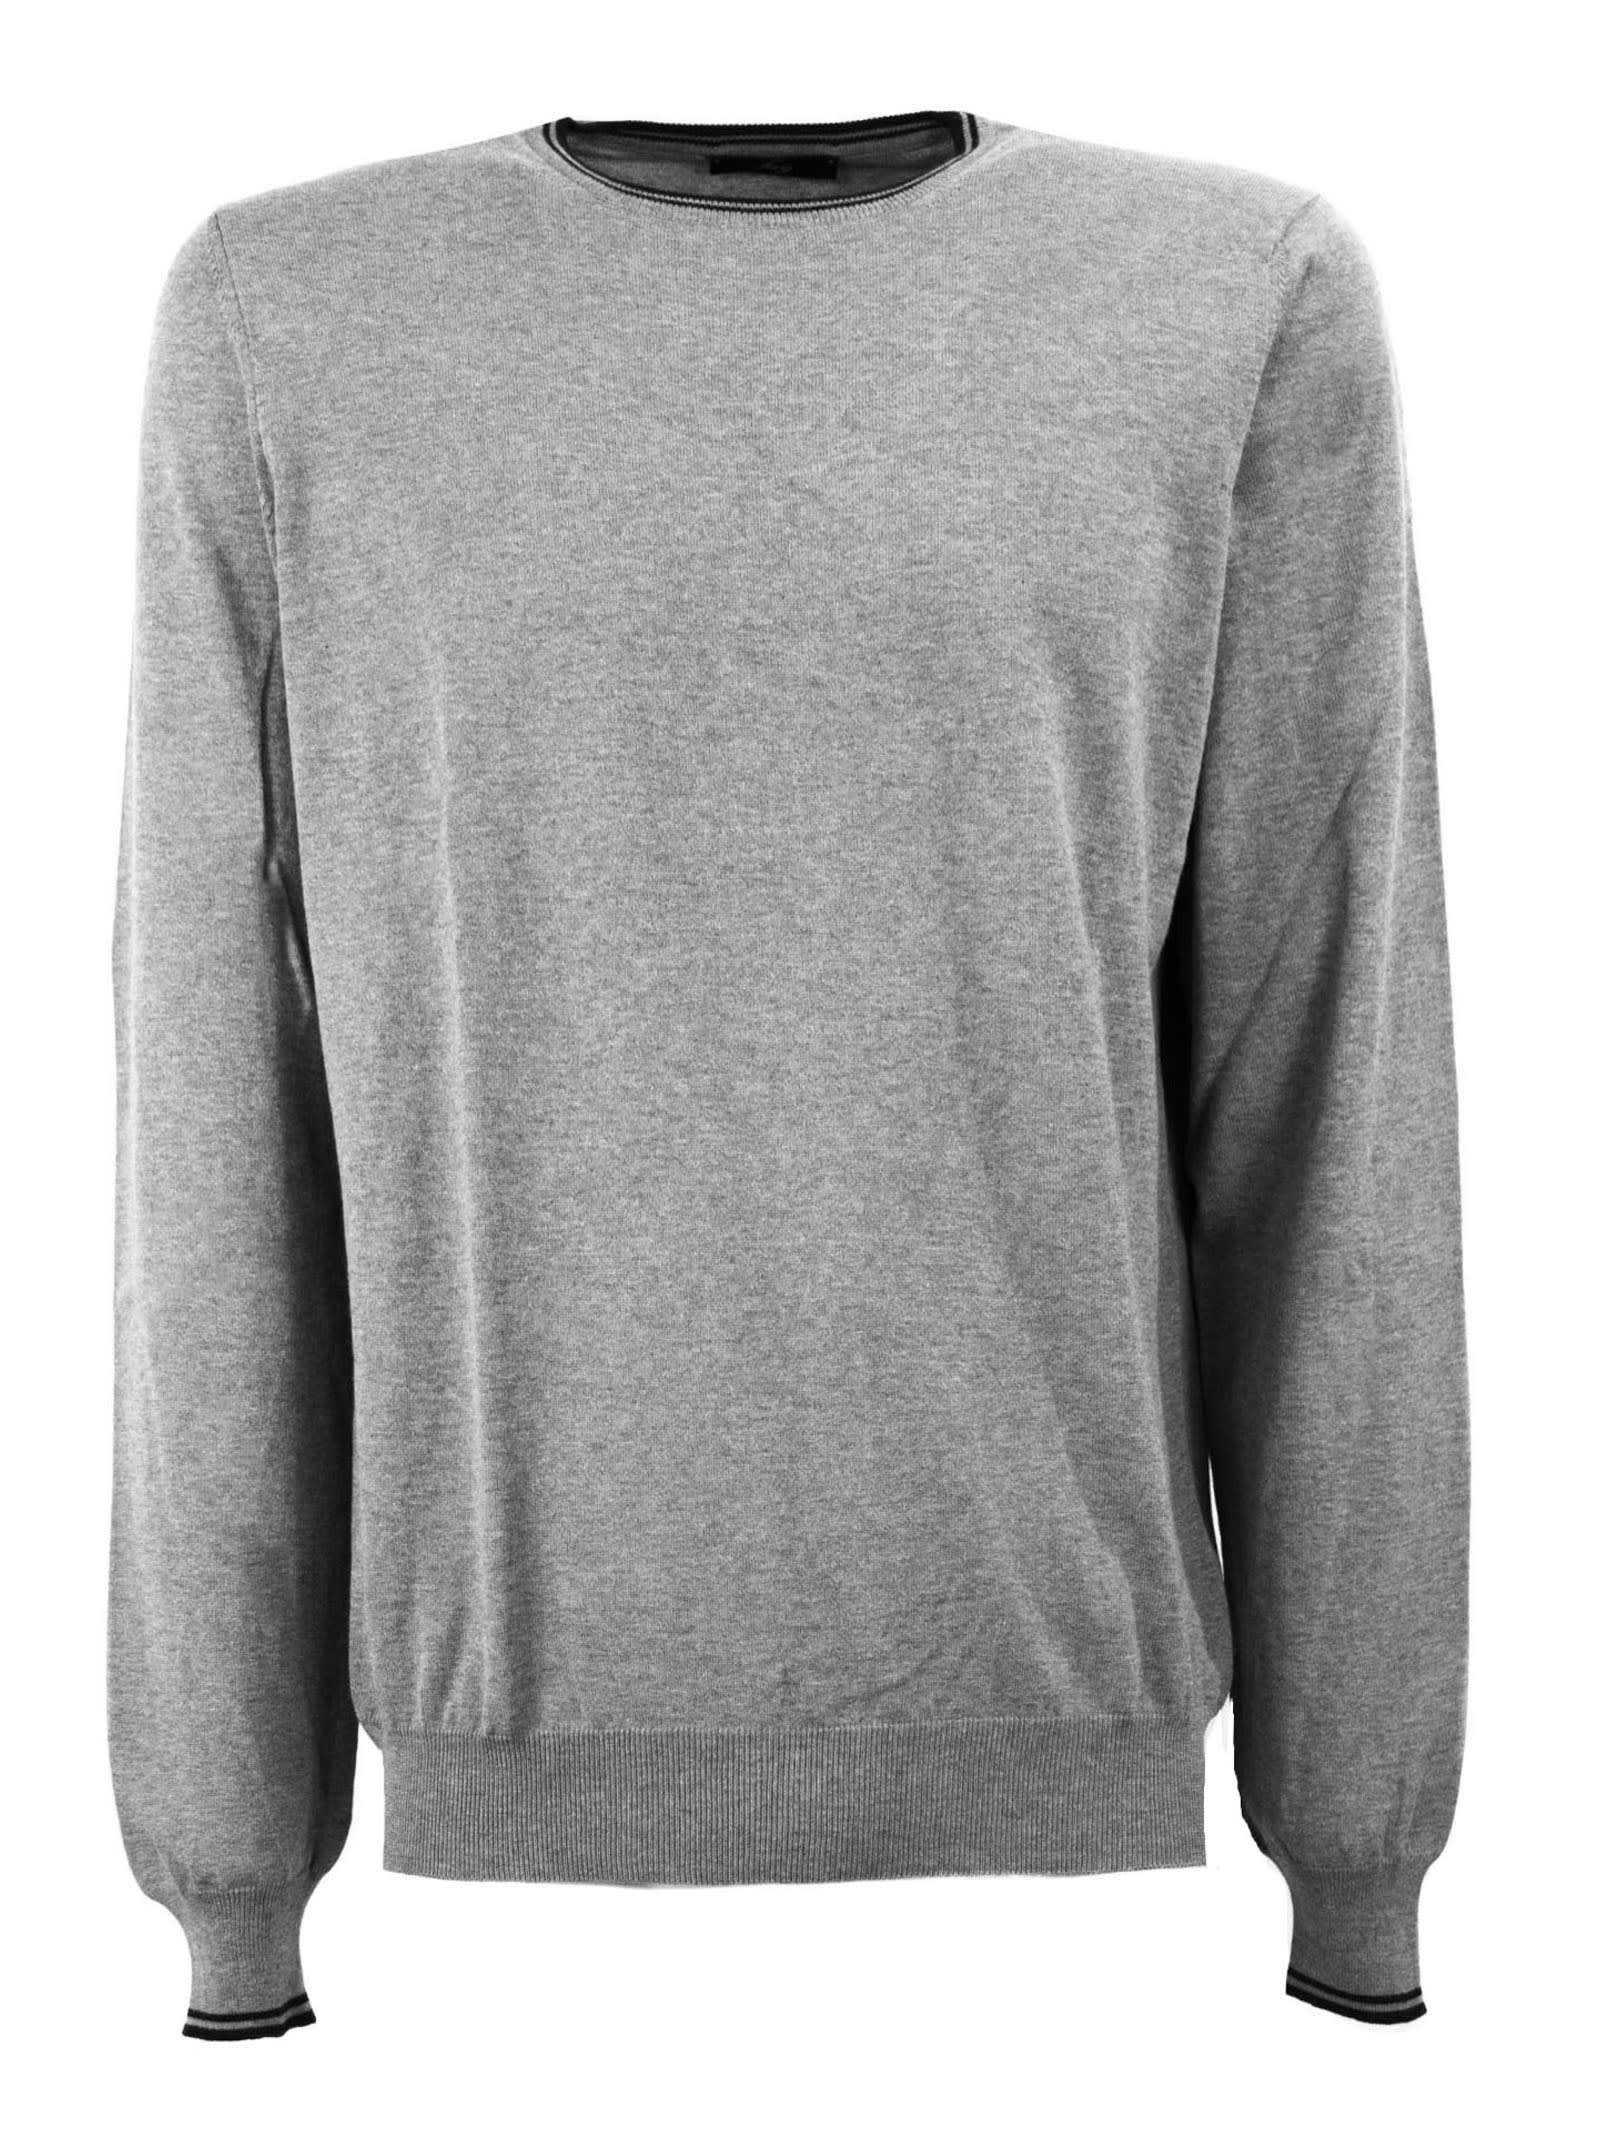 Grey Cotton Sweater Featuring Crew-Neck, Long Sleeves, Ribbed Trims, Regular Fit. Composition: 100% Cotton